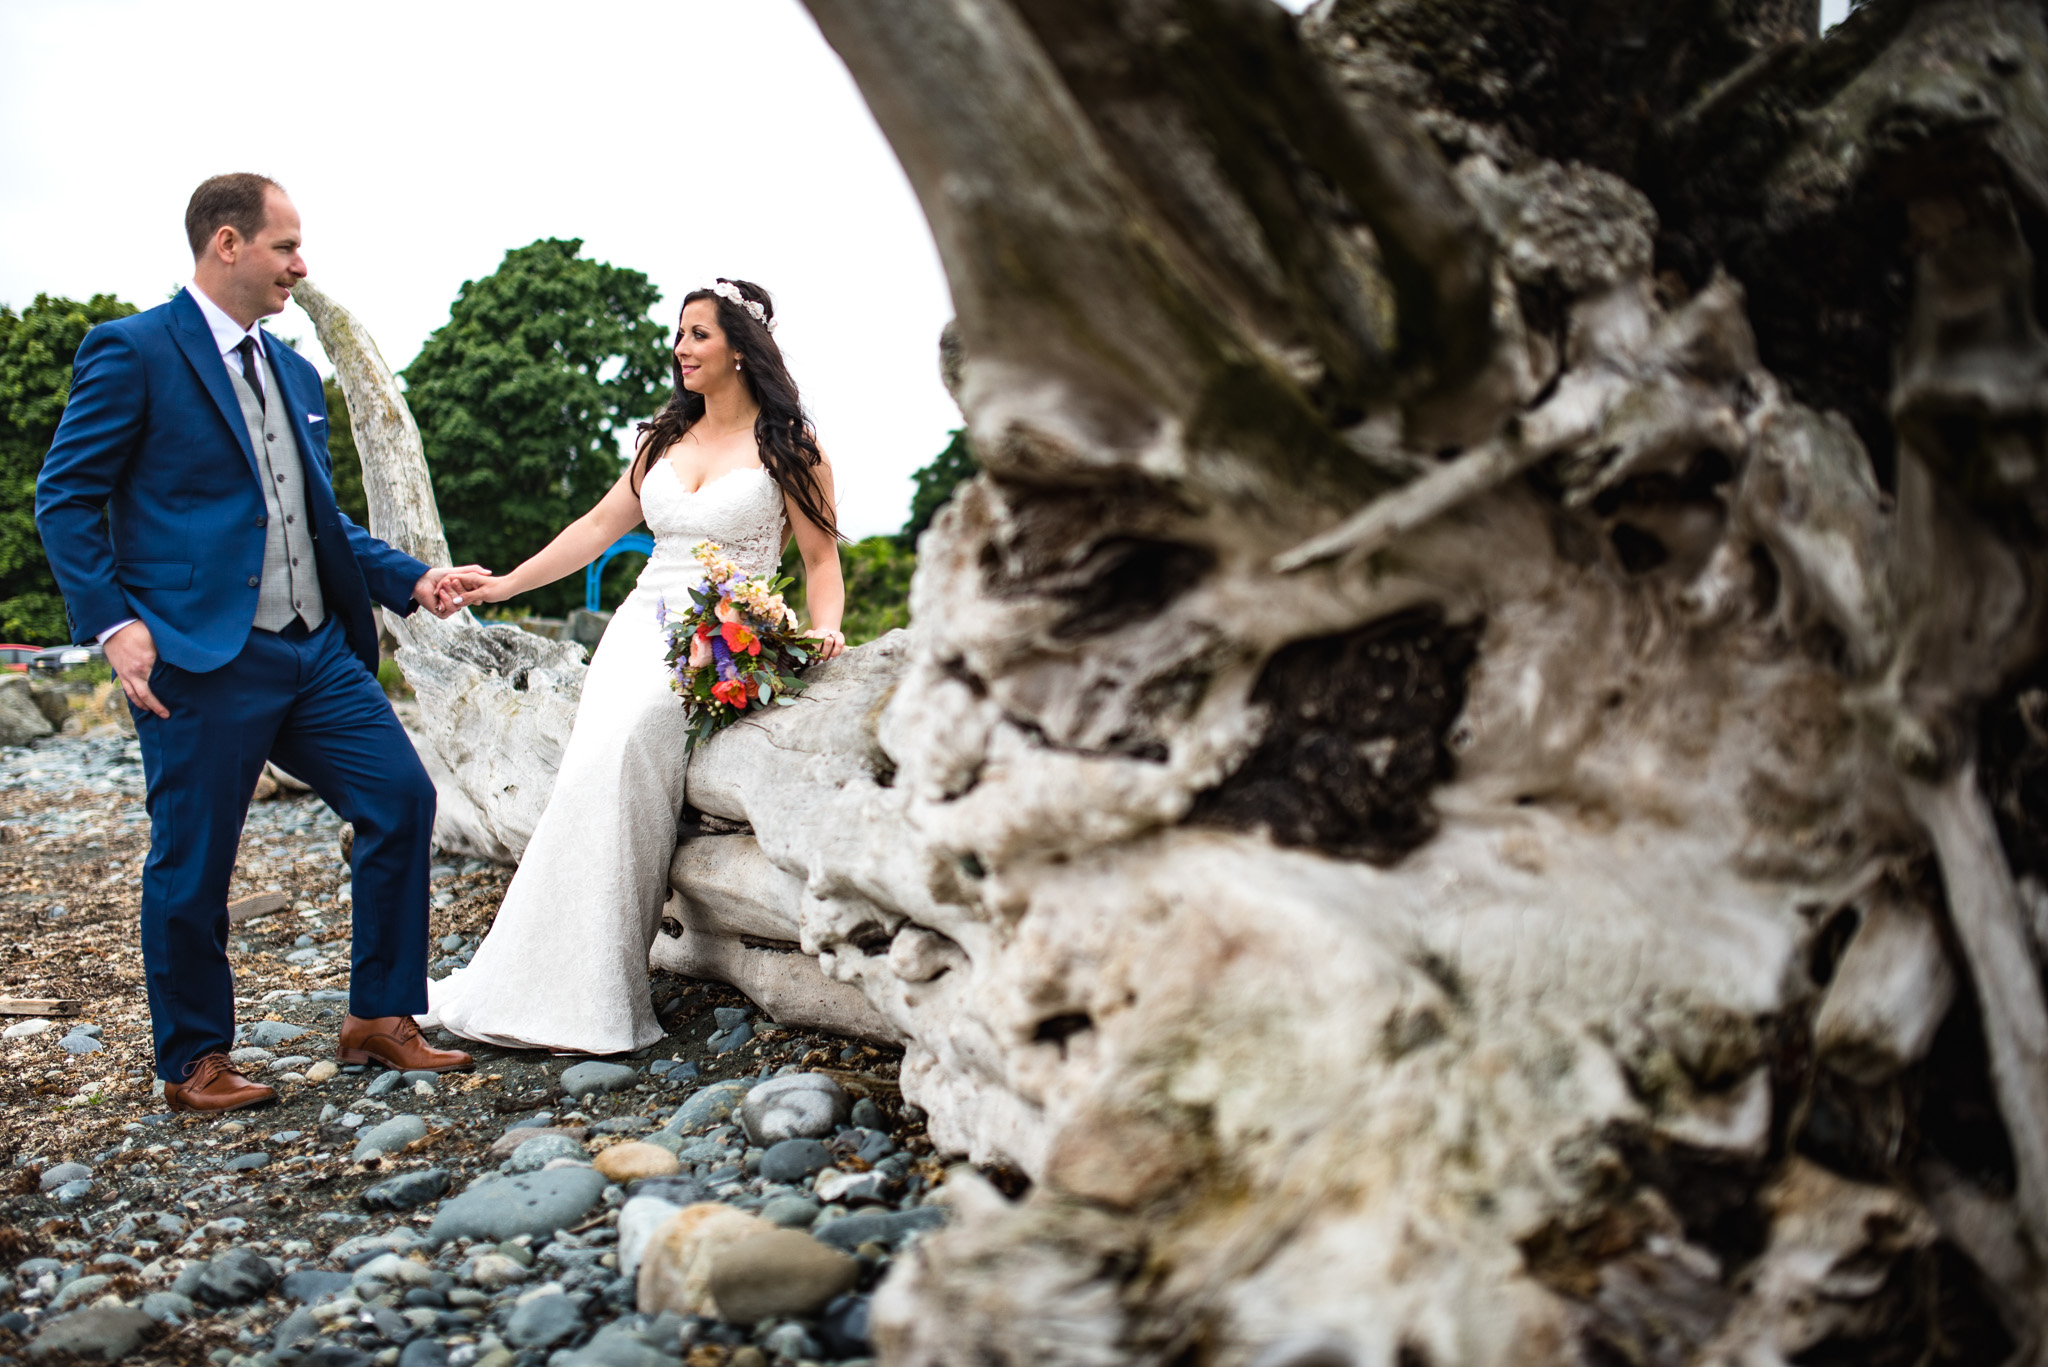 victoria-wedding-photographer-sooke-prestige-resort-wedding-29.jpg